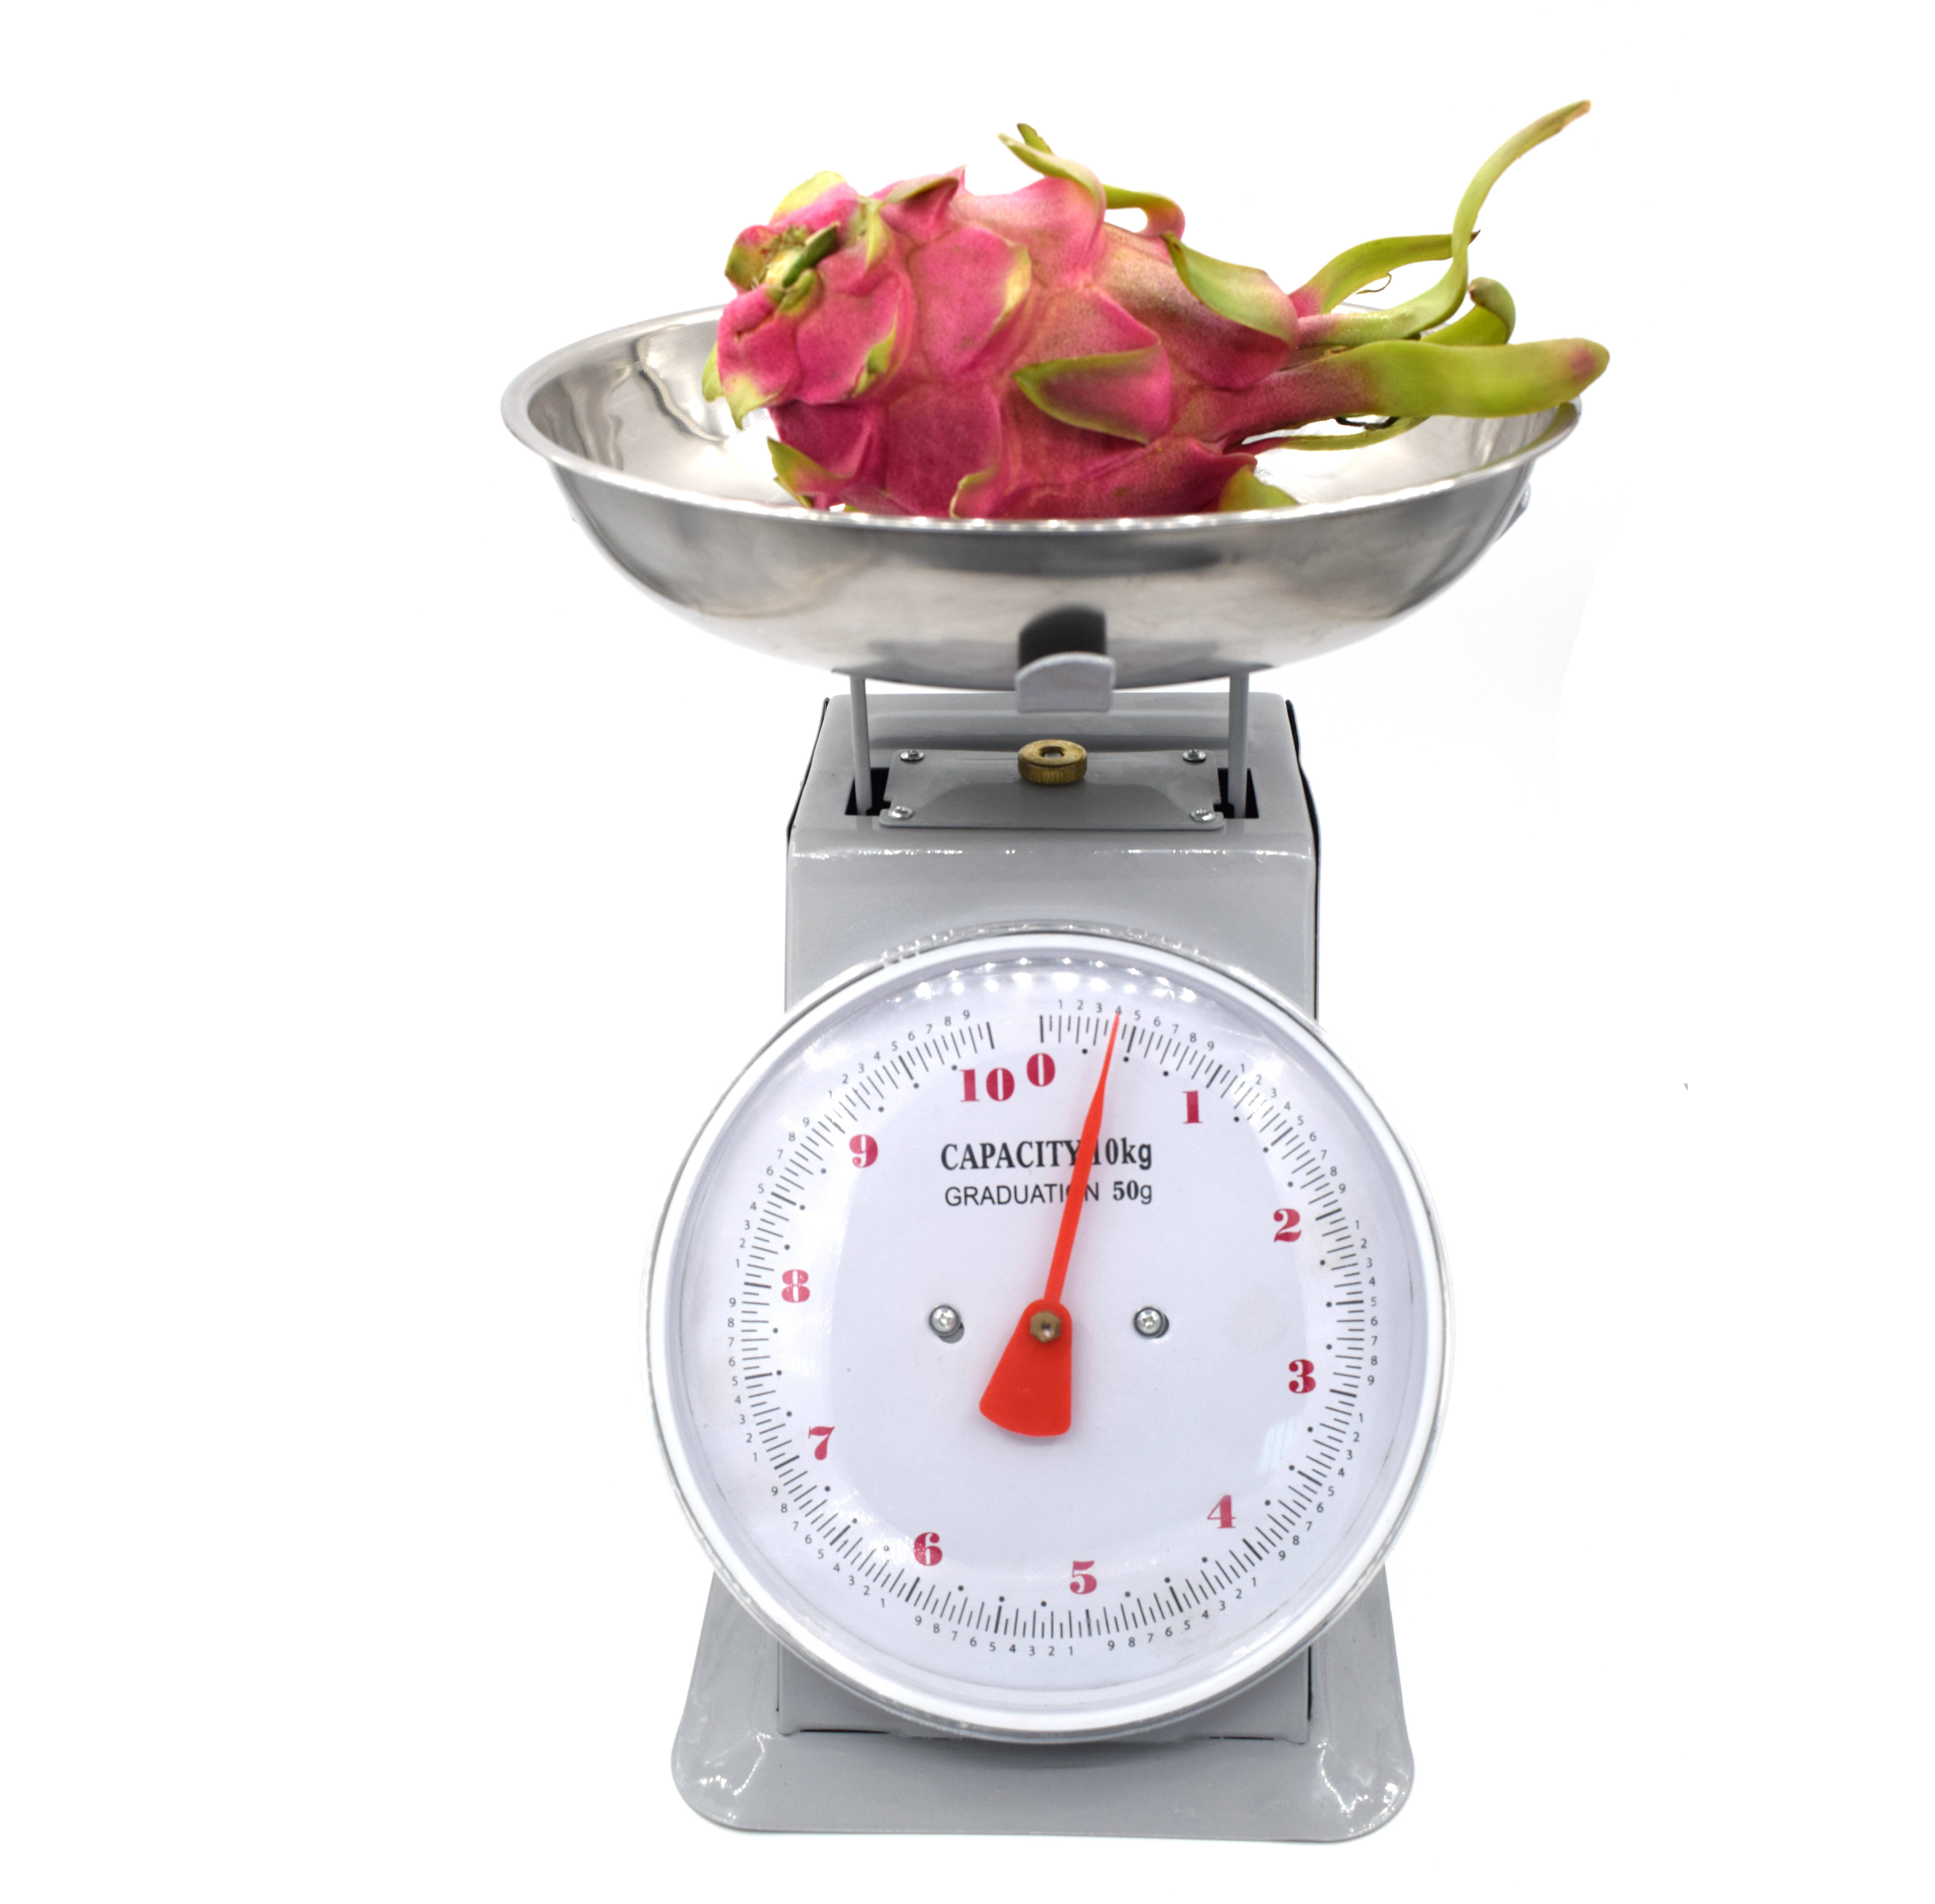 Best mechanical kitchen weighing scale for food spring kitchen scale